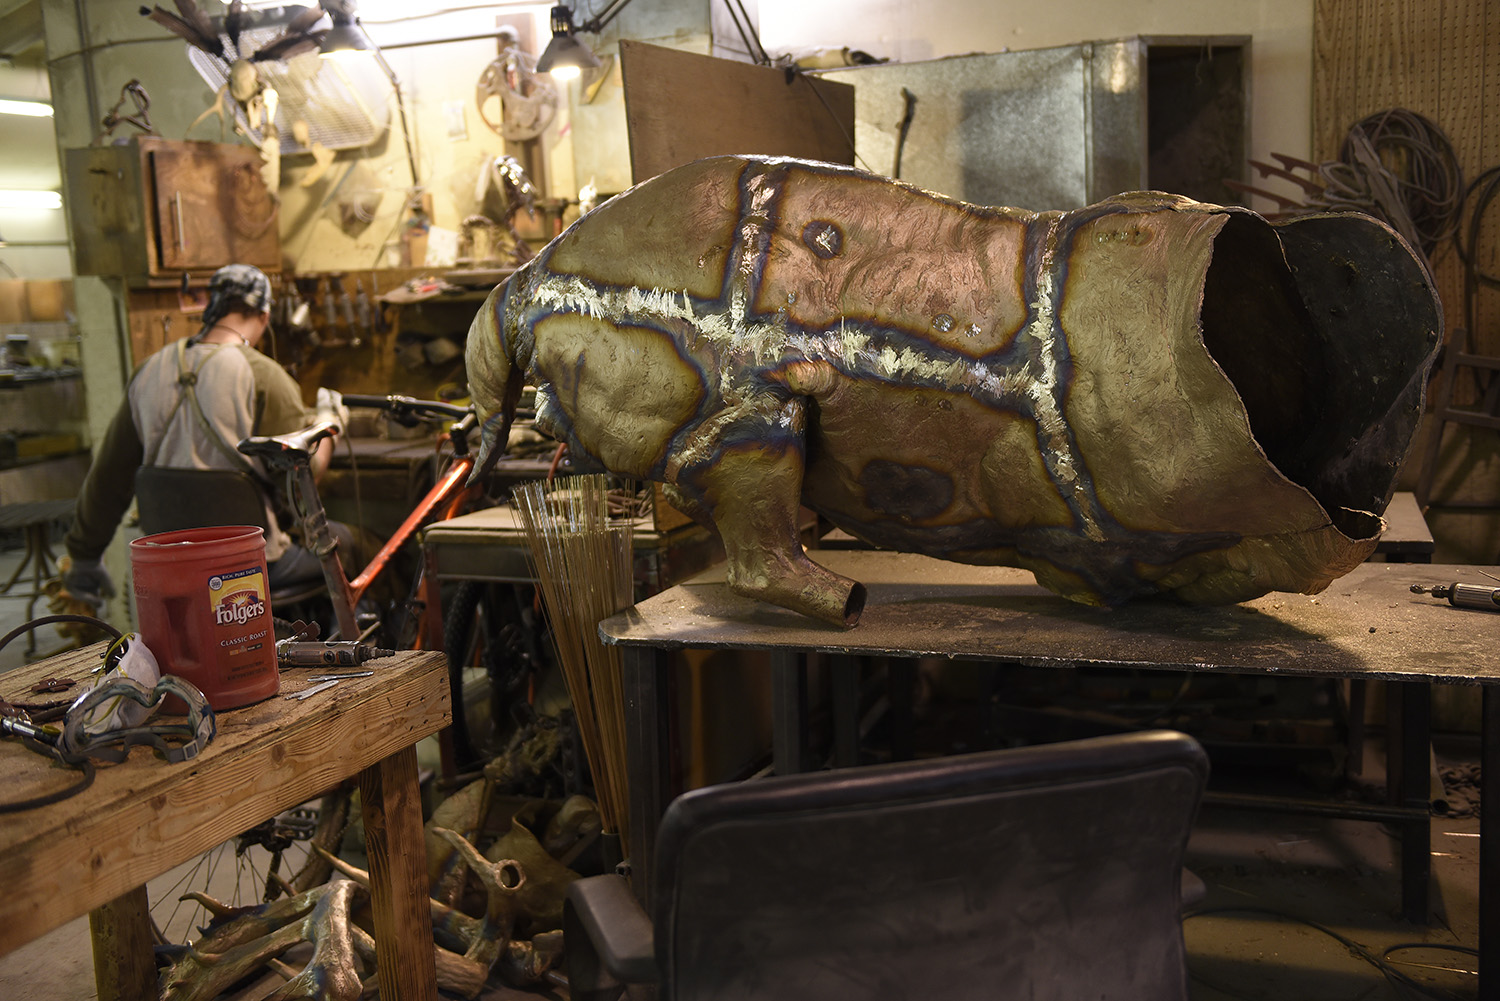 Perfect seams:  - Larger sculptures are cast in panels that are then welded together in the metal room. Every weld will need to be chased with grinding and sanding tools until it is seamless and smooth so that that artist's original work is presented.